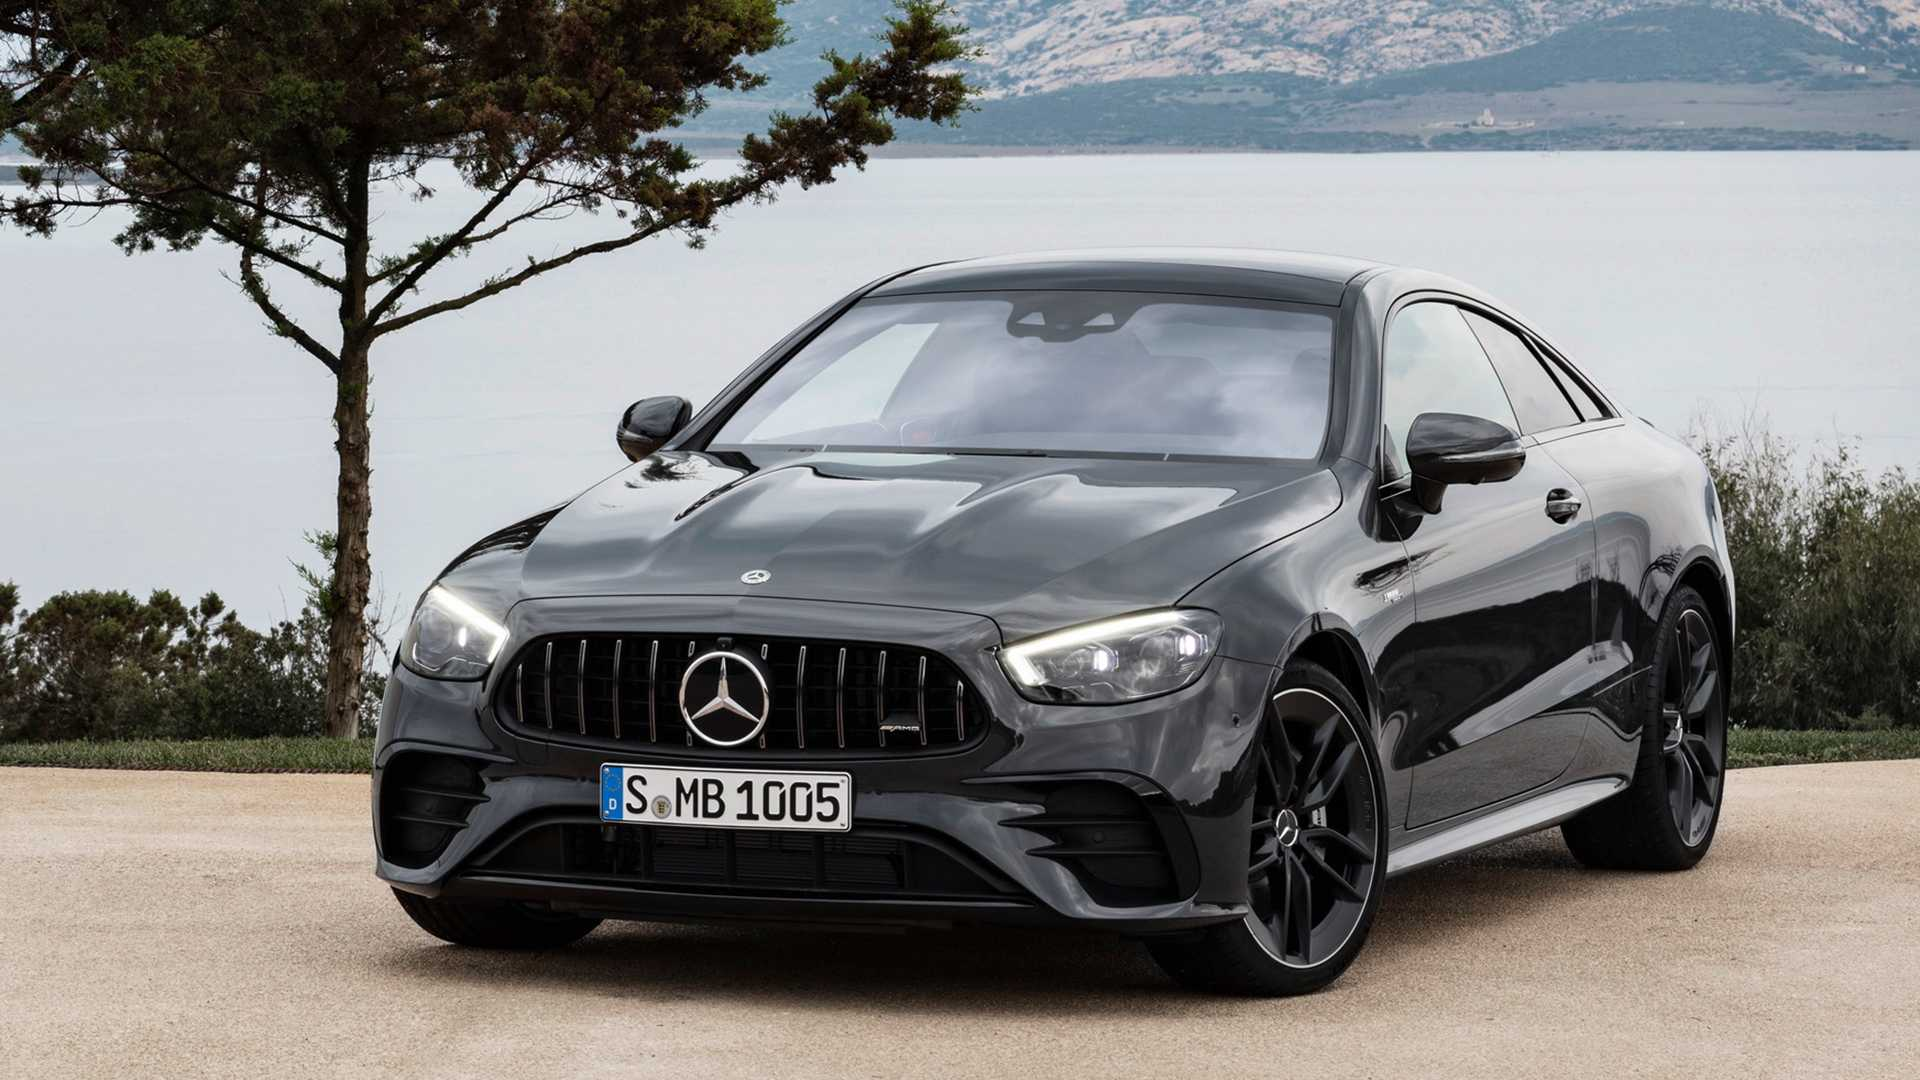 2020 - [Mercedes-Benz] Classe E restylée  - Page 7 Mercedes-amg-e-53-coupe-2020